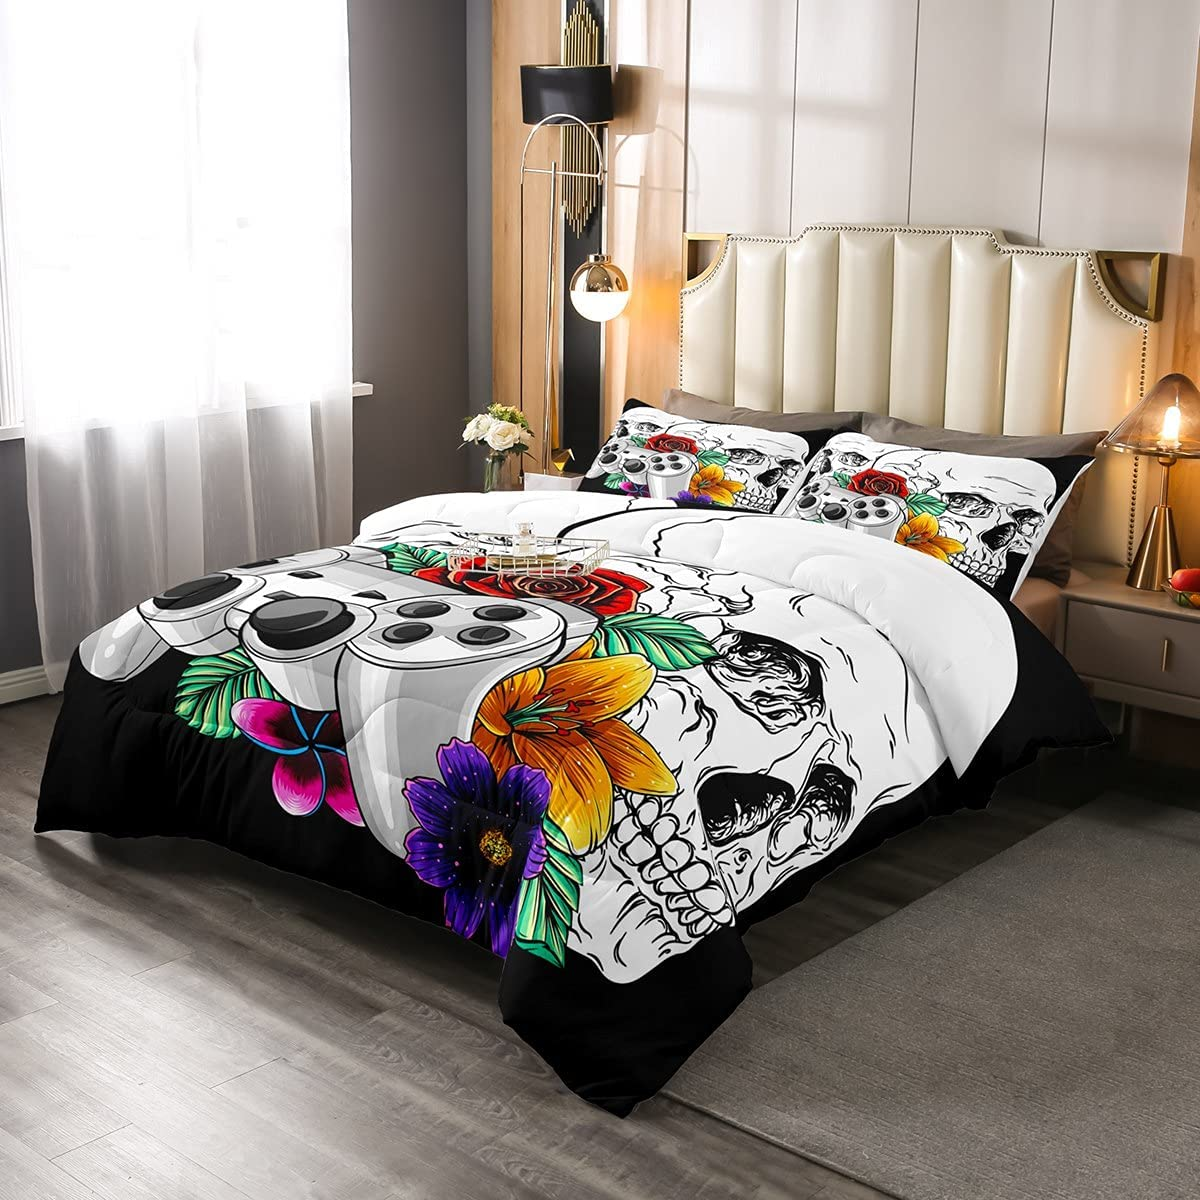 Erosebridal Gaming Bedding Set for Size Boys Gamer Fixed price sale Twin Max 88% OFF Gamepad